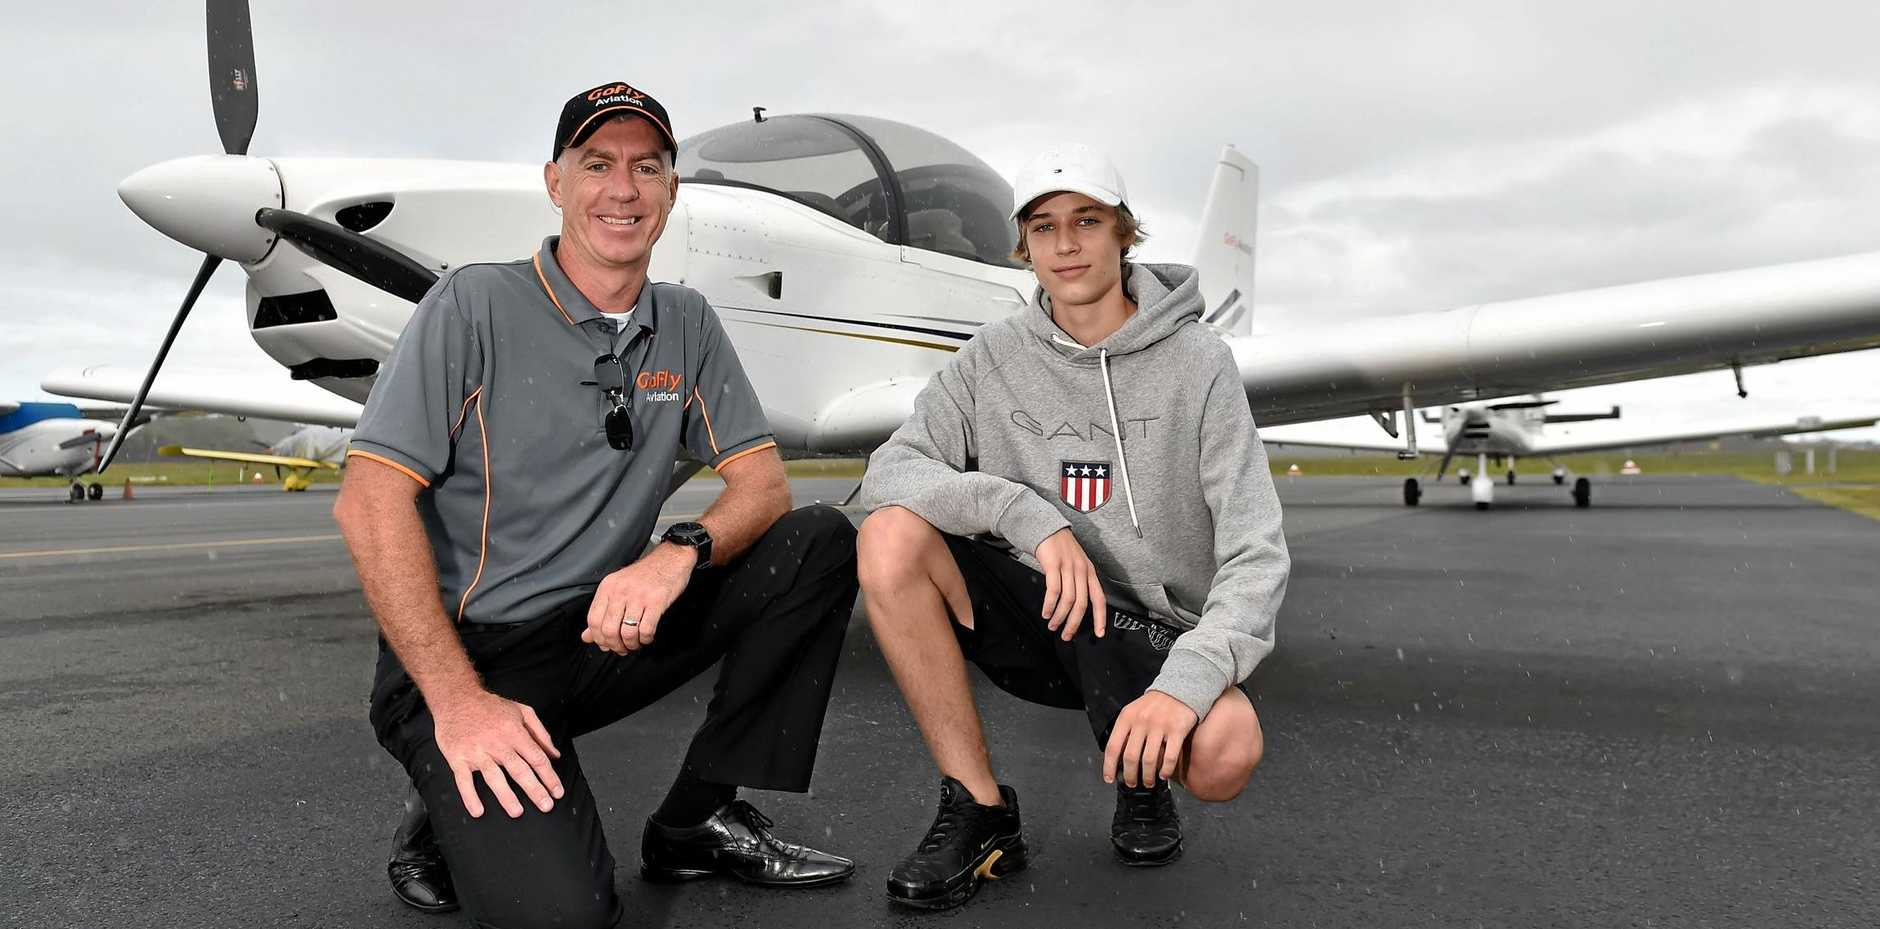 Zac Stepney has autism spectrum disorder and is now on track to do a mechanic apprenticeship. Caloundra's GoFly flight instructor Dan Maloney will also offer a flight in a Sling aircraft as part of the program.